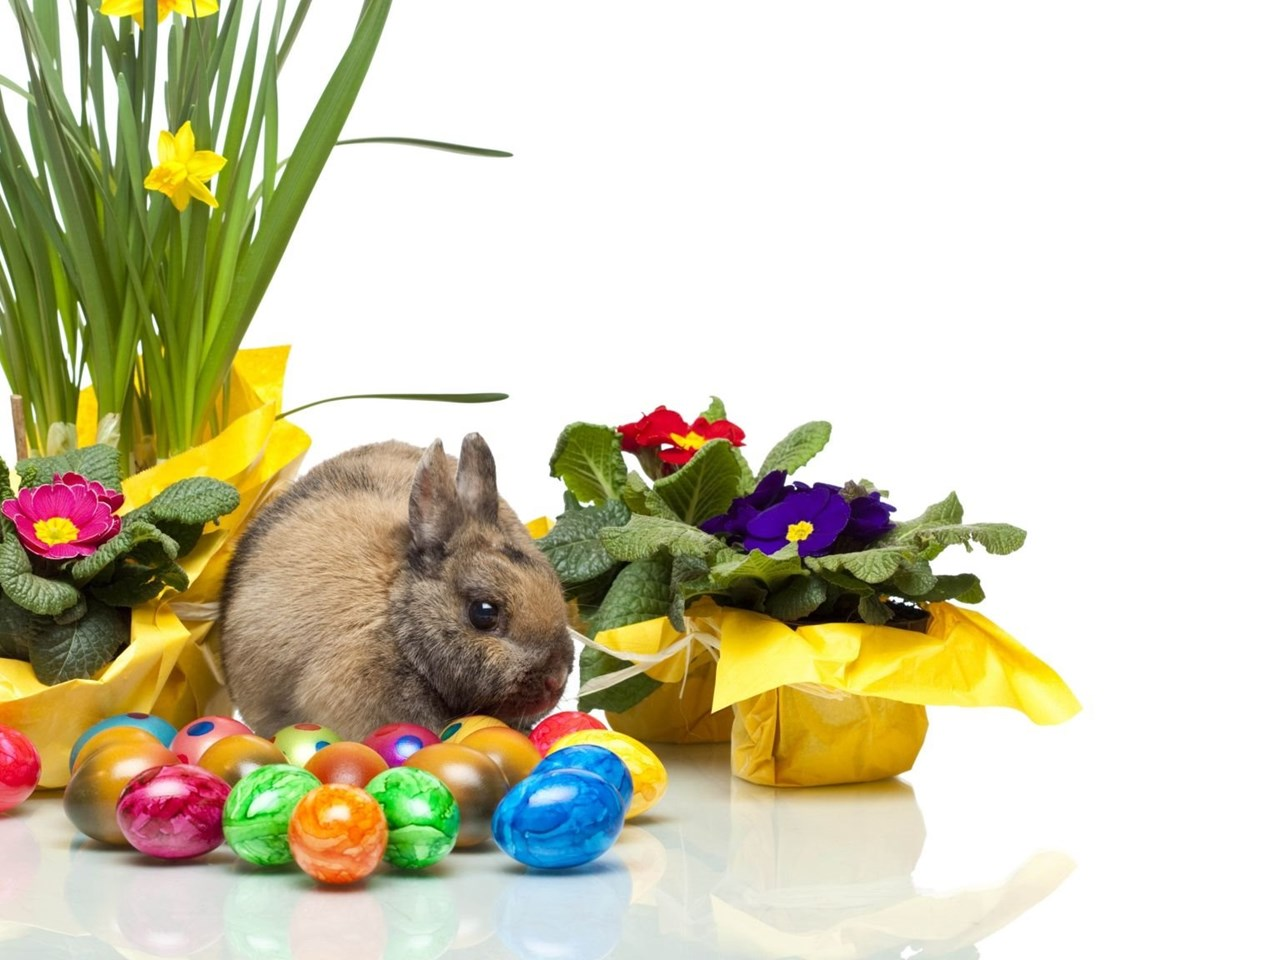 Download Wallpapers 2048x1152 Easter Bunny Eggs Violets